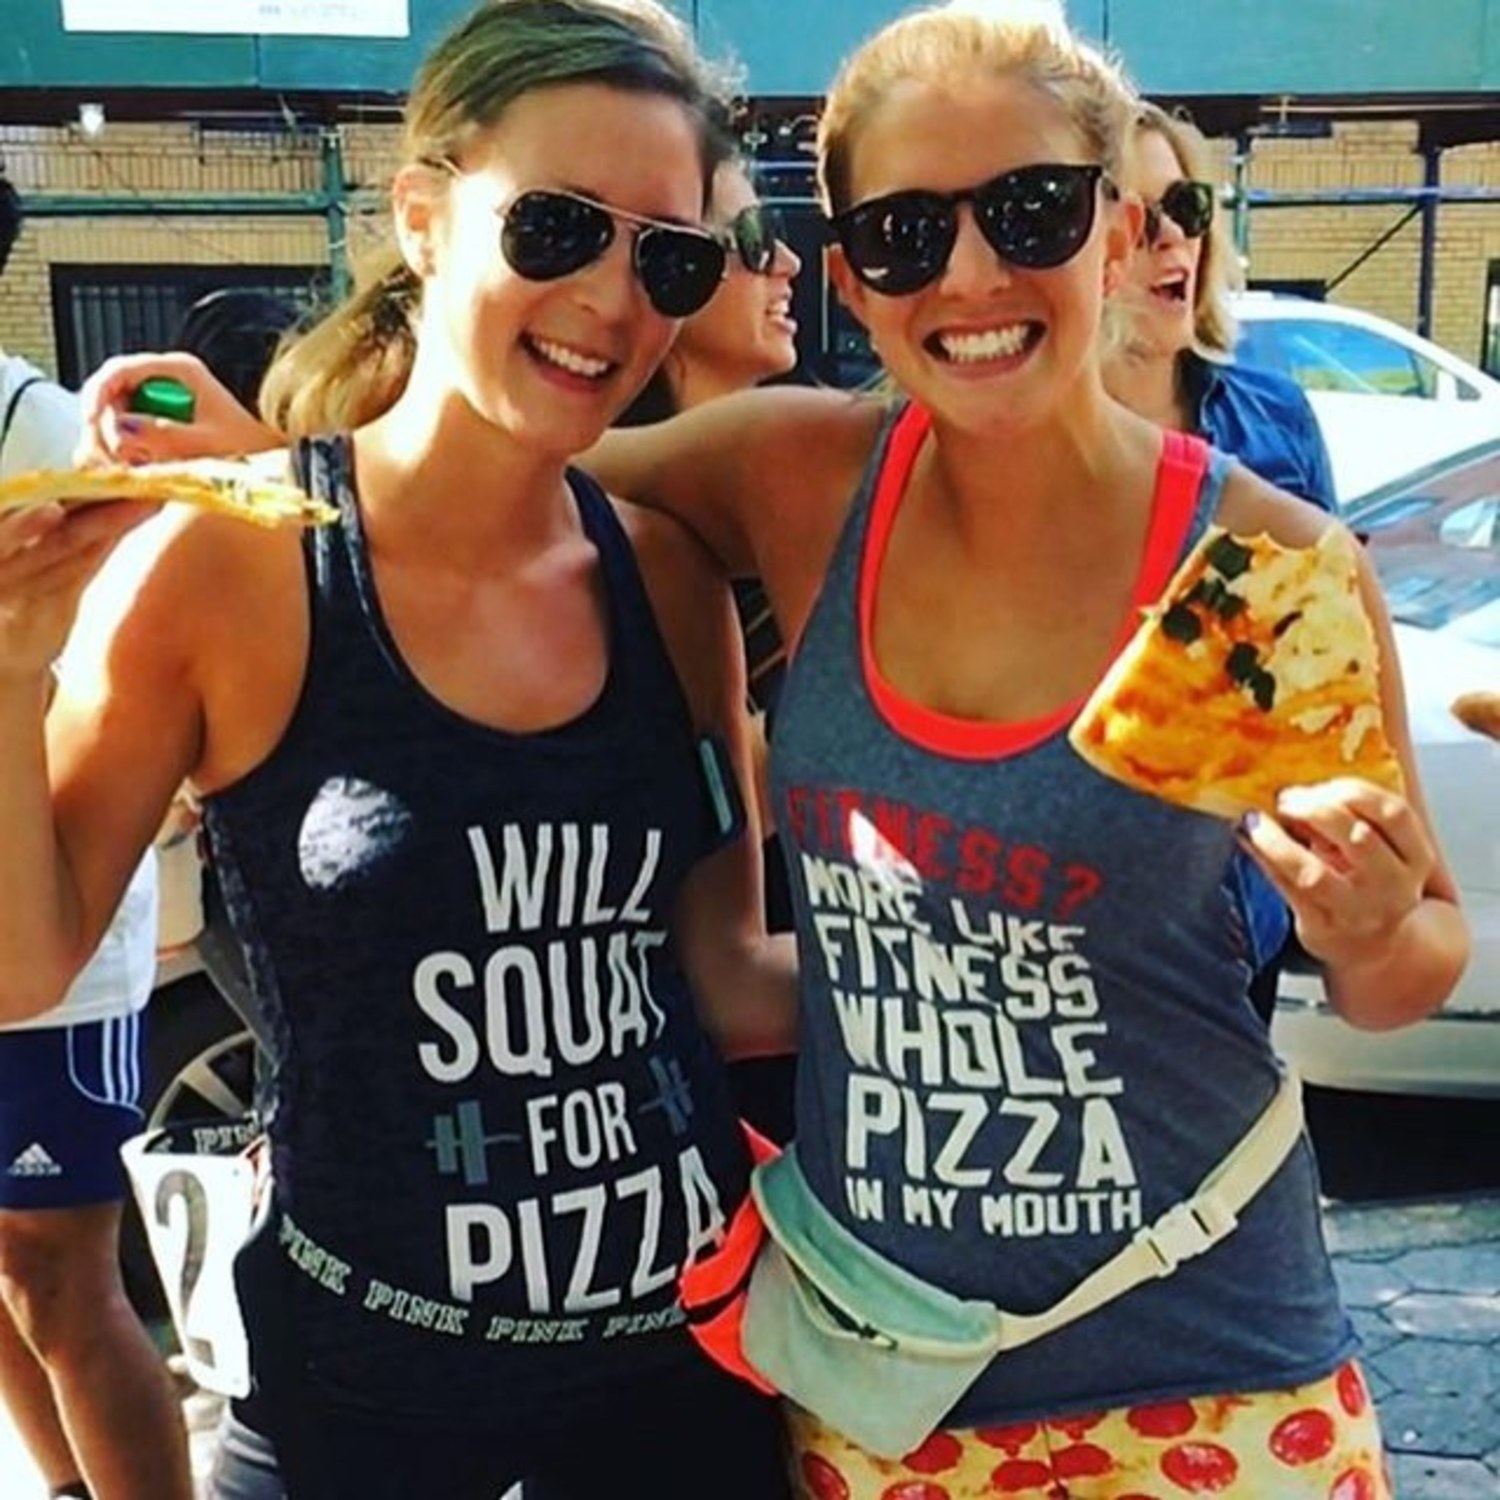 Can you believe that we are just one week away from this year's event?? See you next Sunday! Here's a pic of @lbr0wneyesi and @thepizzamonster1 rocking their slices and pizza tanks from last year's run!